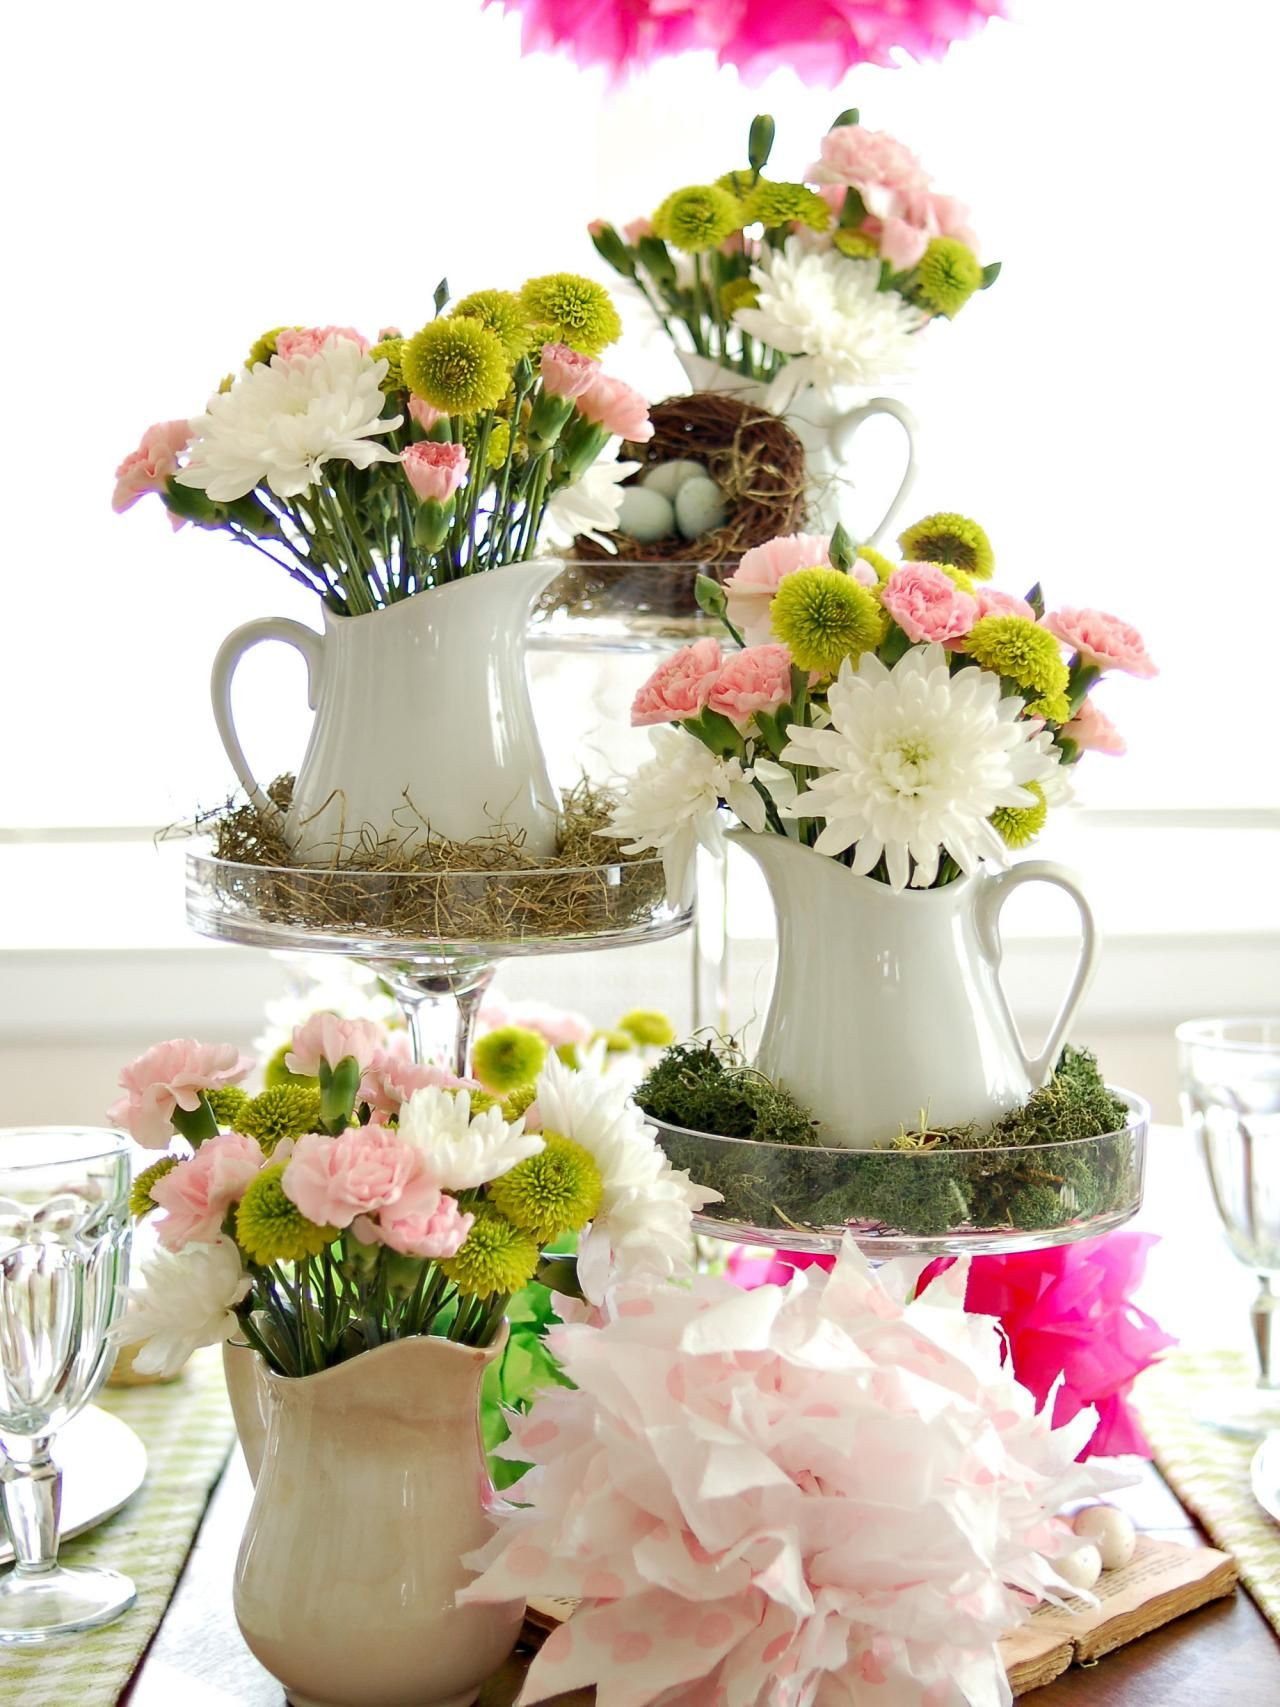 Colorful Spring Table Setting  sc 1 st  Pinterest & Colorful Spring Table Setting | Centerpieces Spring and Flower